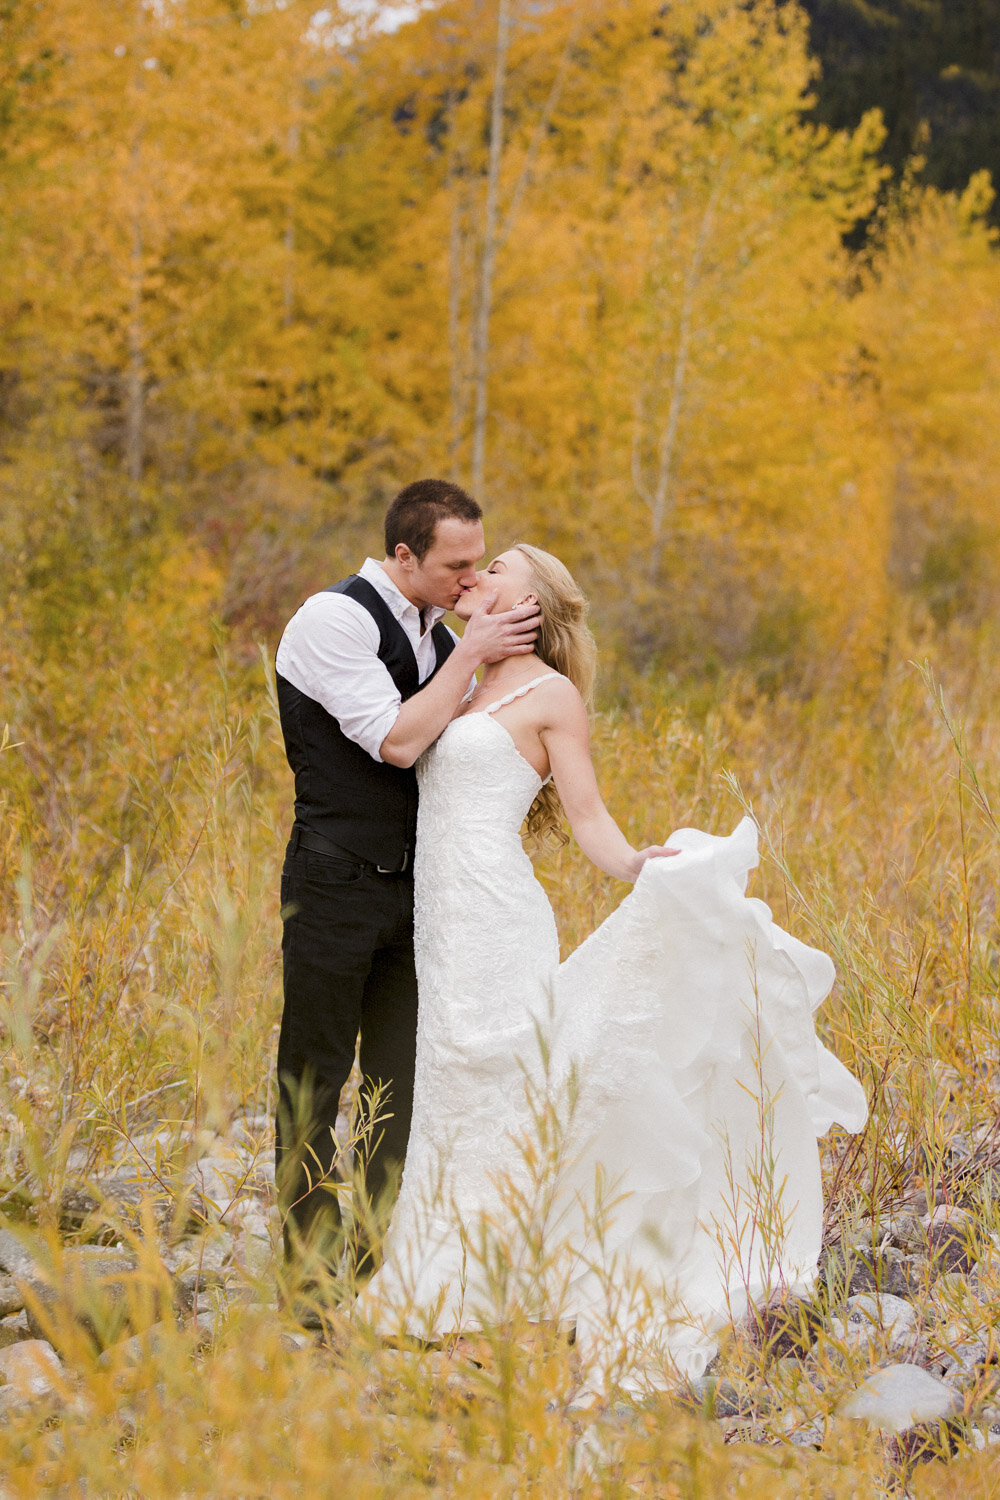 Wedding in a forest bend oregon.jpg